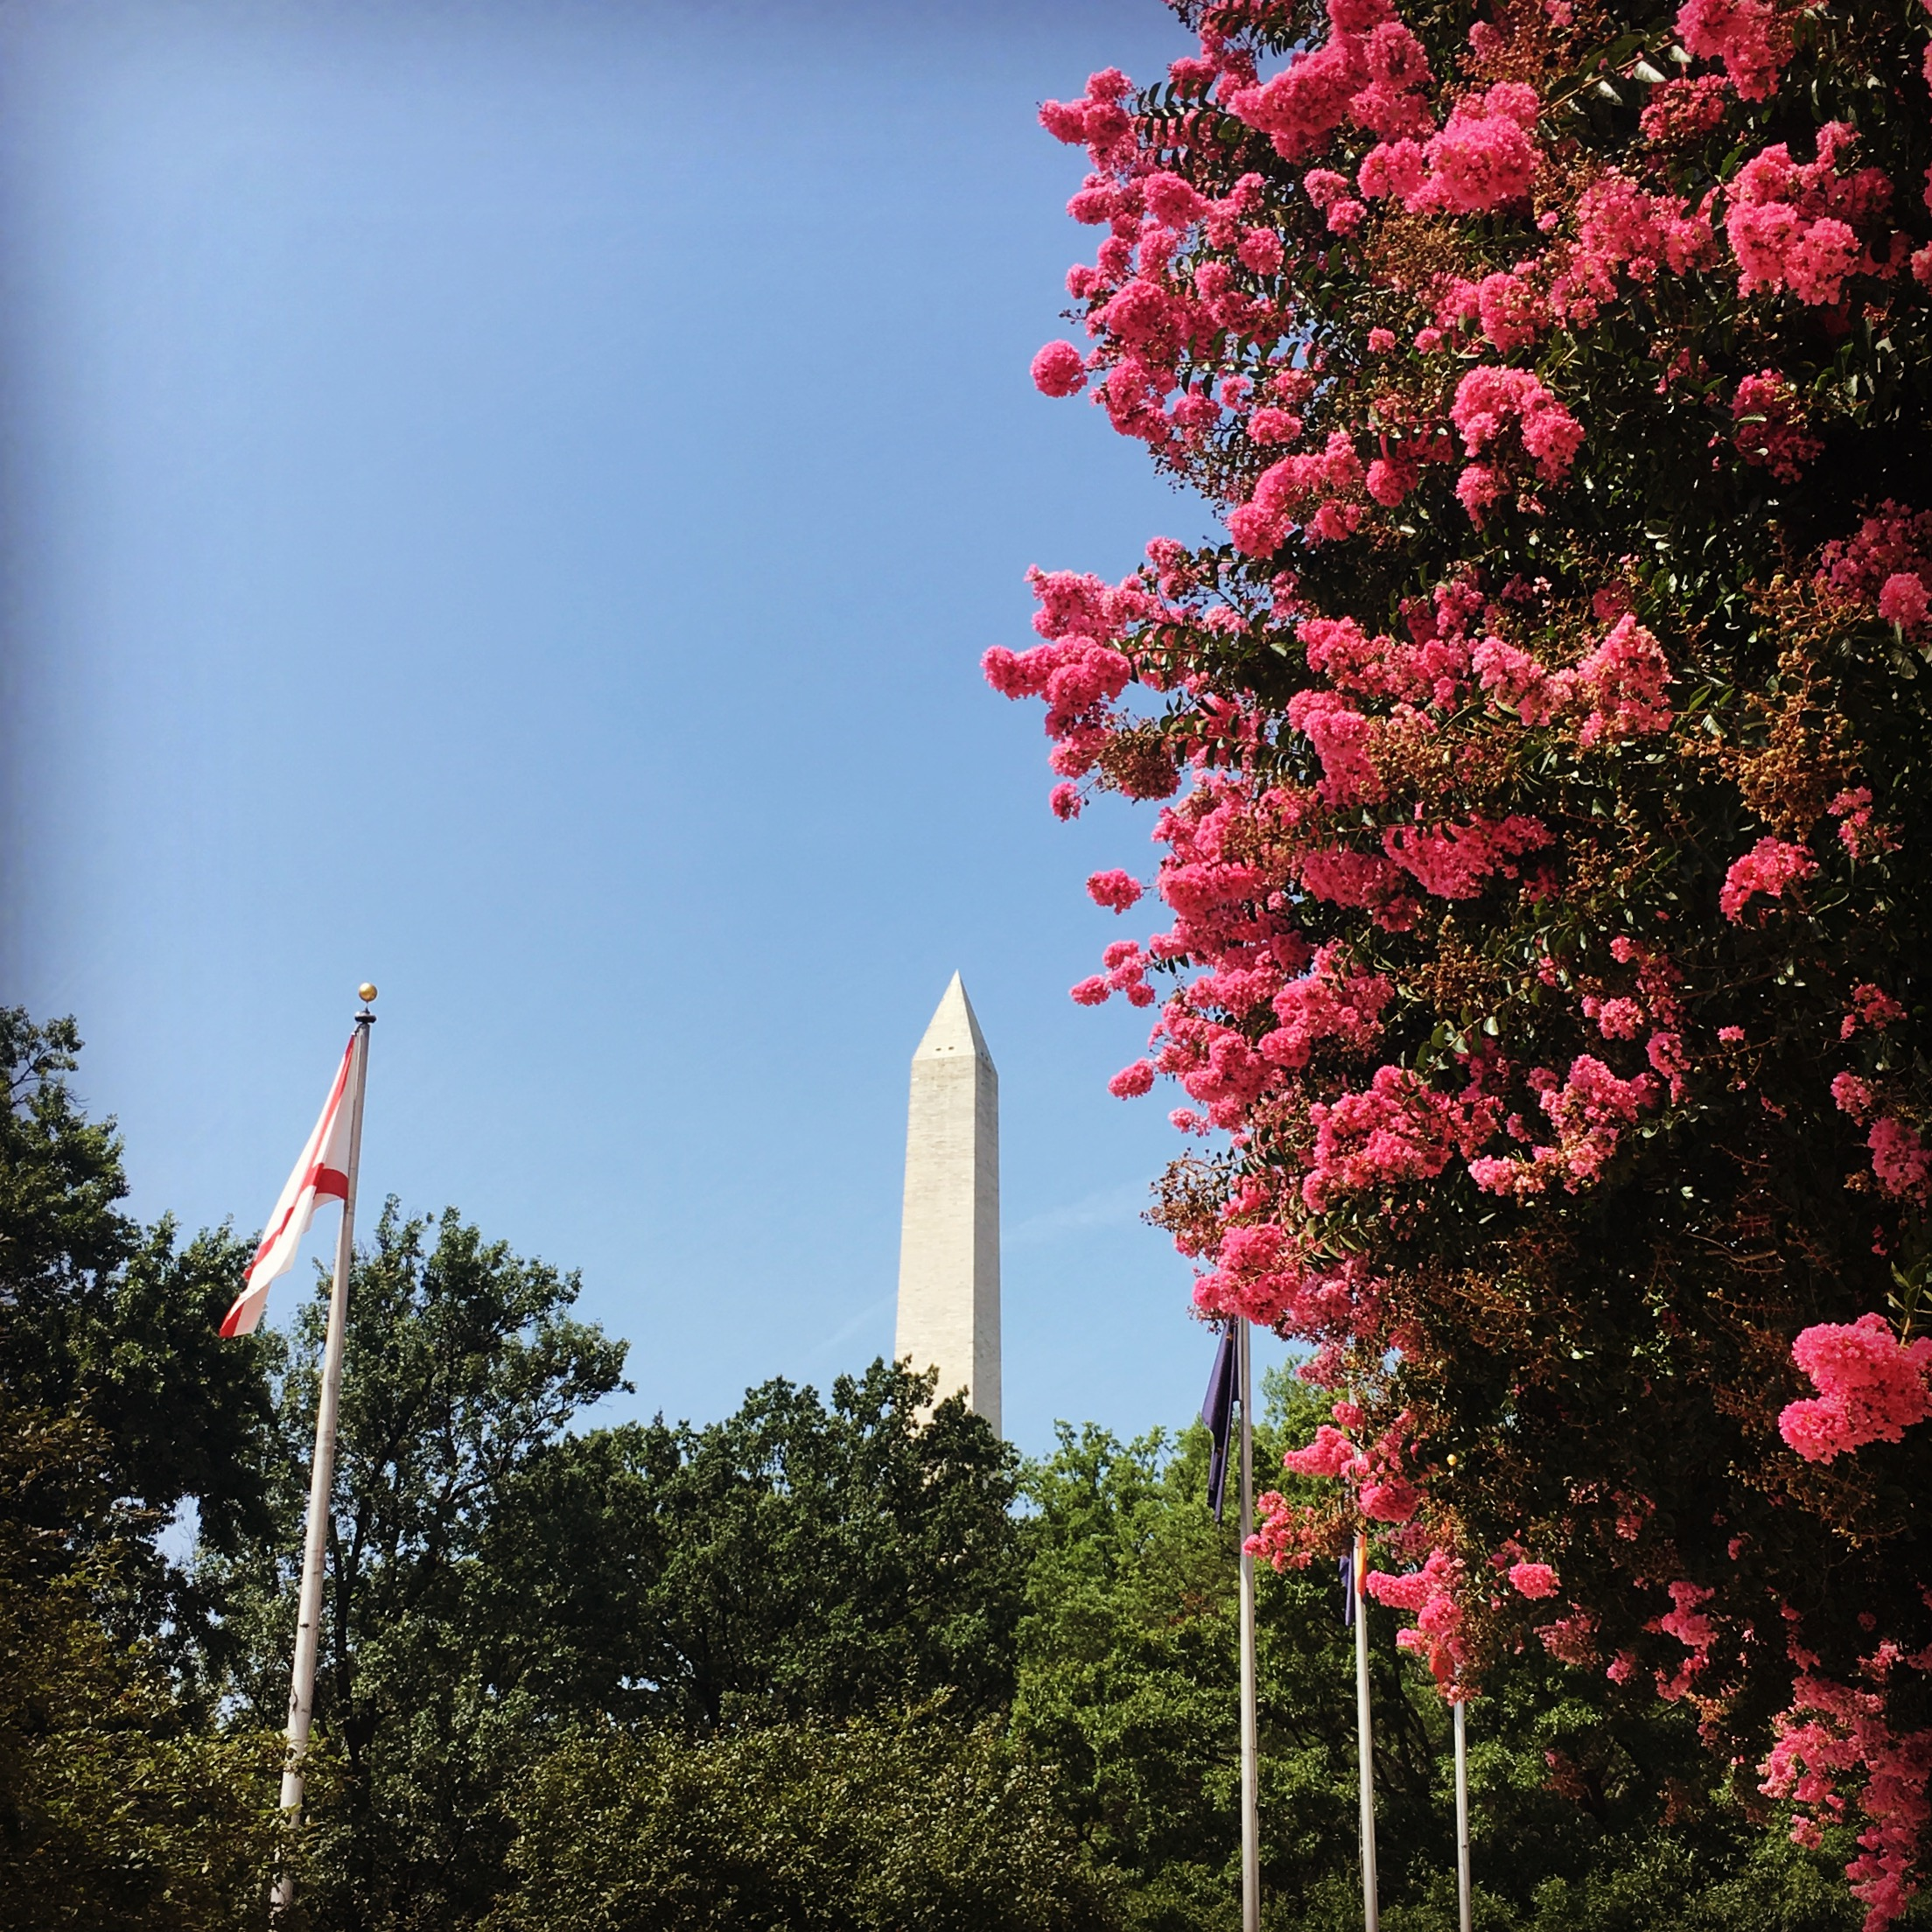 Image: A view of the Washington Monument with foliage and flowering trees. Image copyright Elisabeth Caron